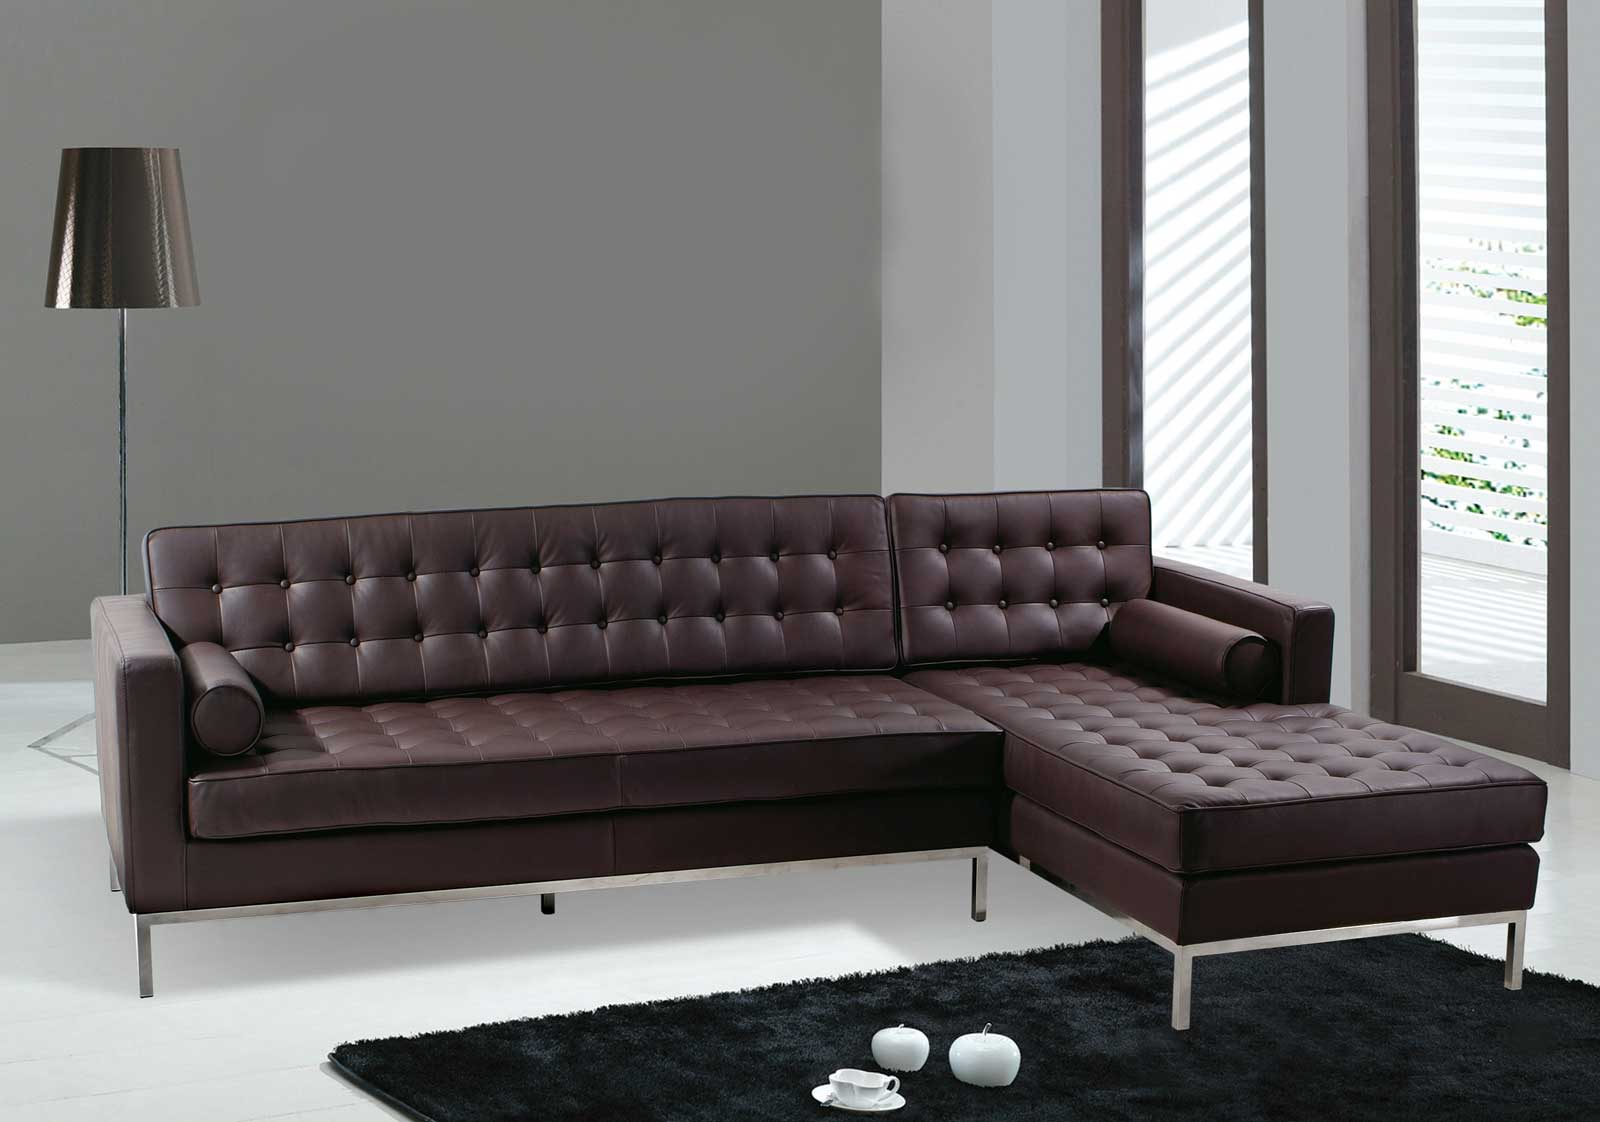 Modern sectional sofas for office waiting room for Modern leather furniture